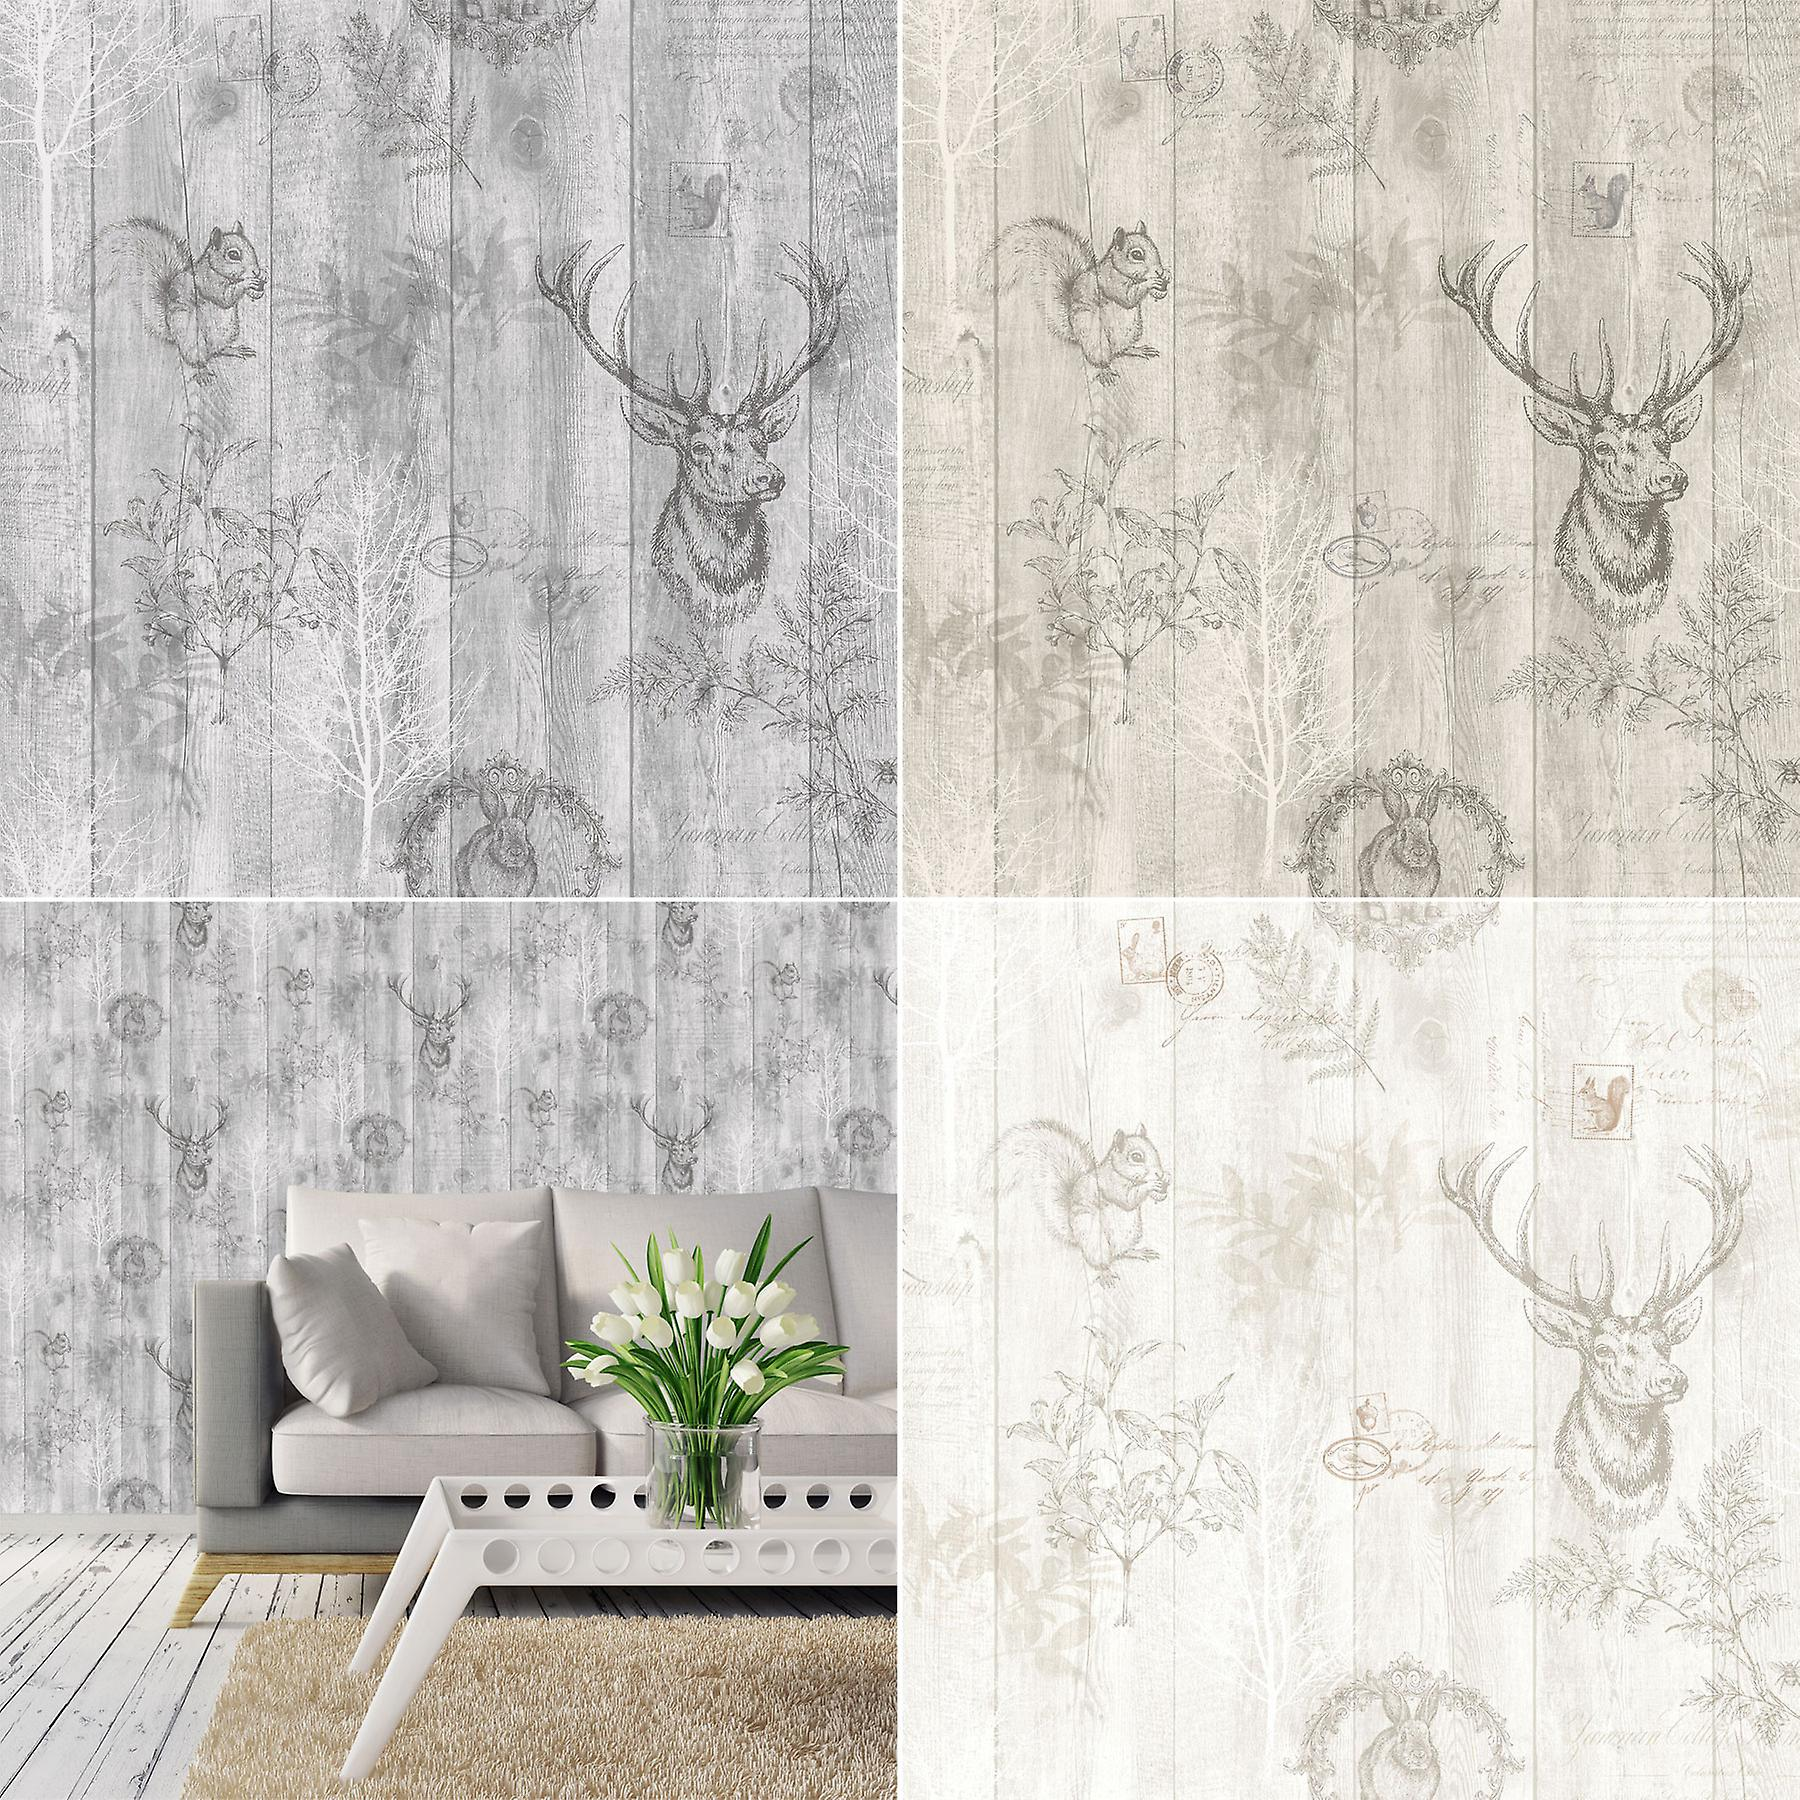 Stag Wood Panel Wallpaper Wooden Effect Grains Animal Print Trees